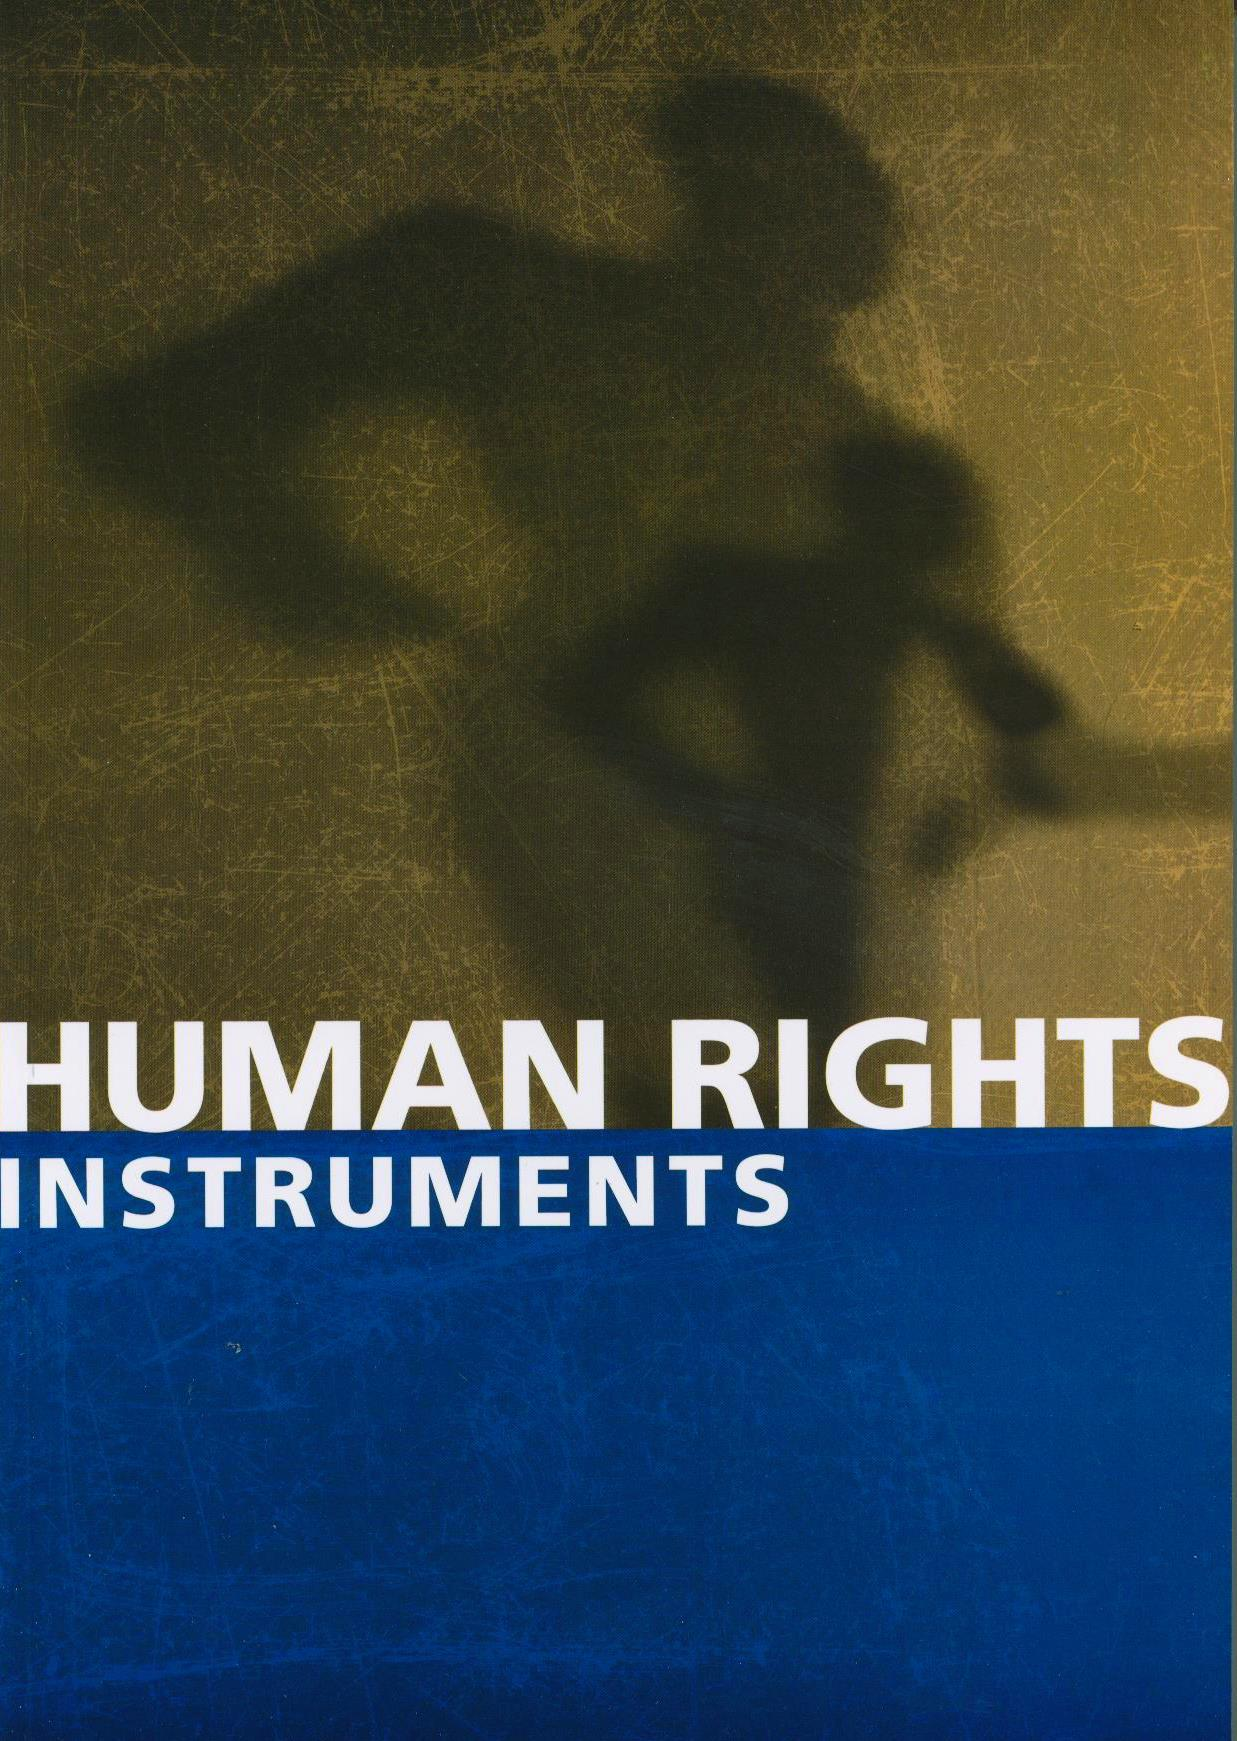 HRs-Instruments-cover